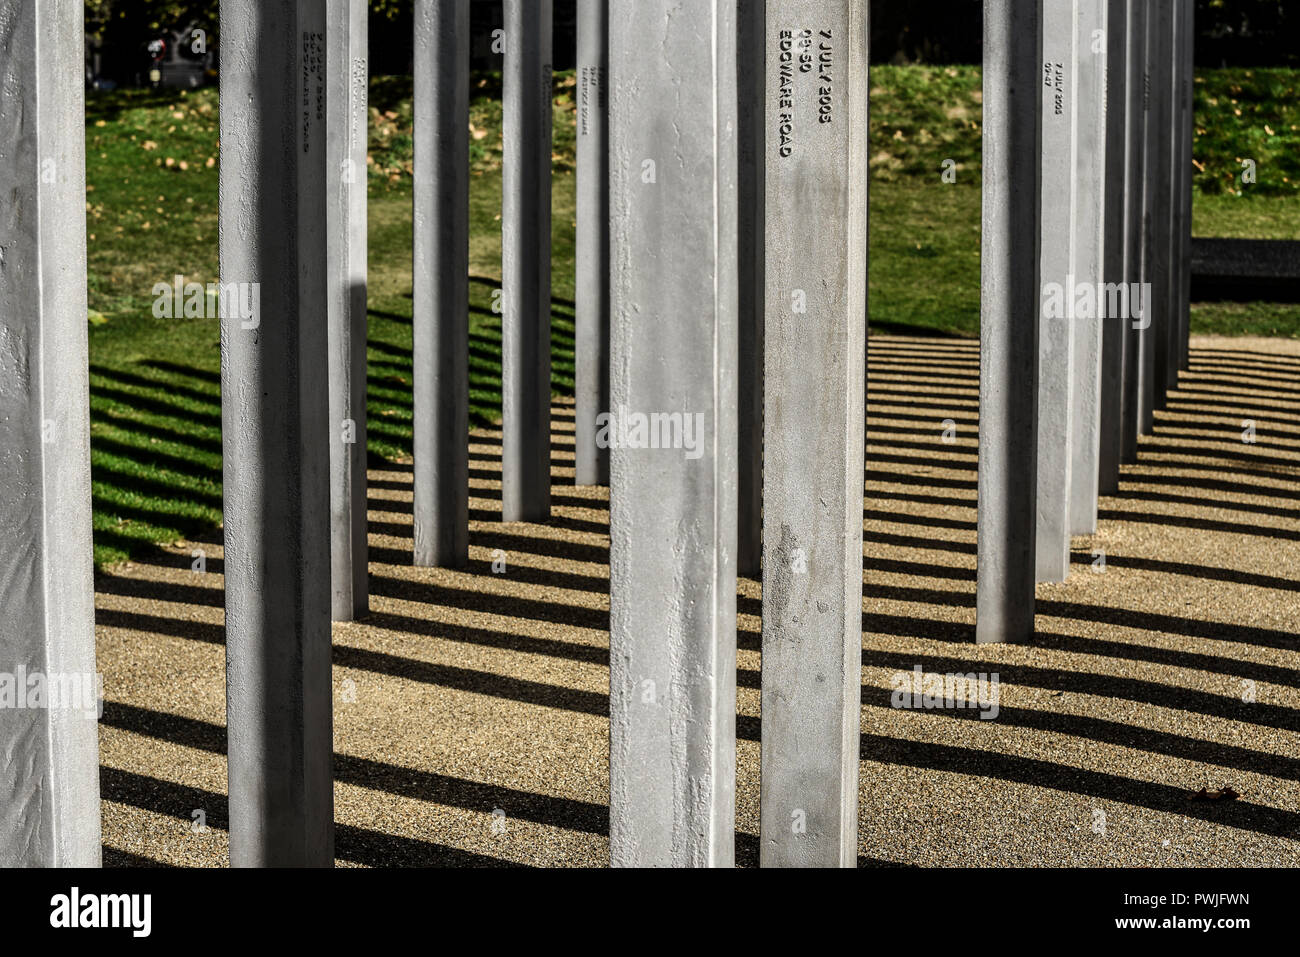 7 July Memorial, Hyde Park, memorial to the 52 victims of the 7 July 2005 London bombings at Tavistock Square, Edgware Road, King's Cross and Aldgate - Stock Image